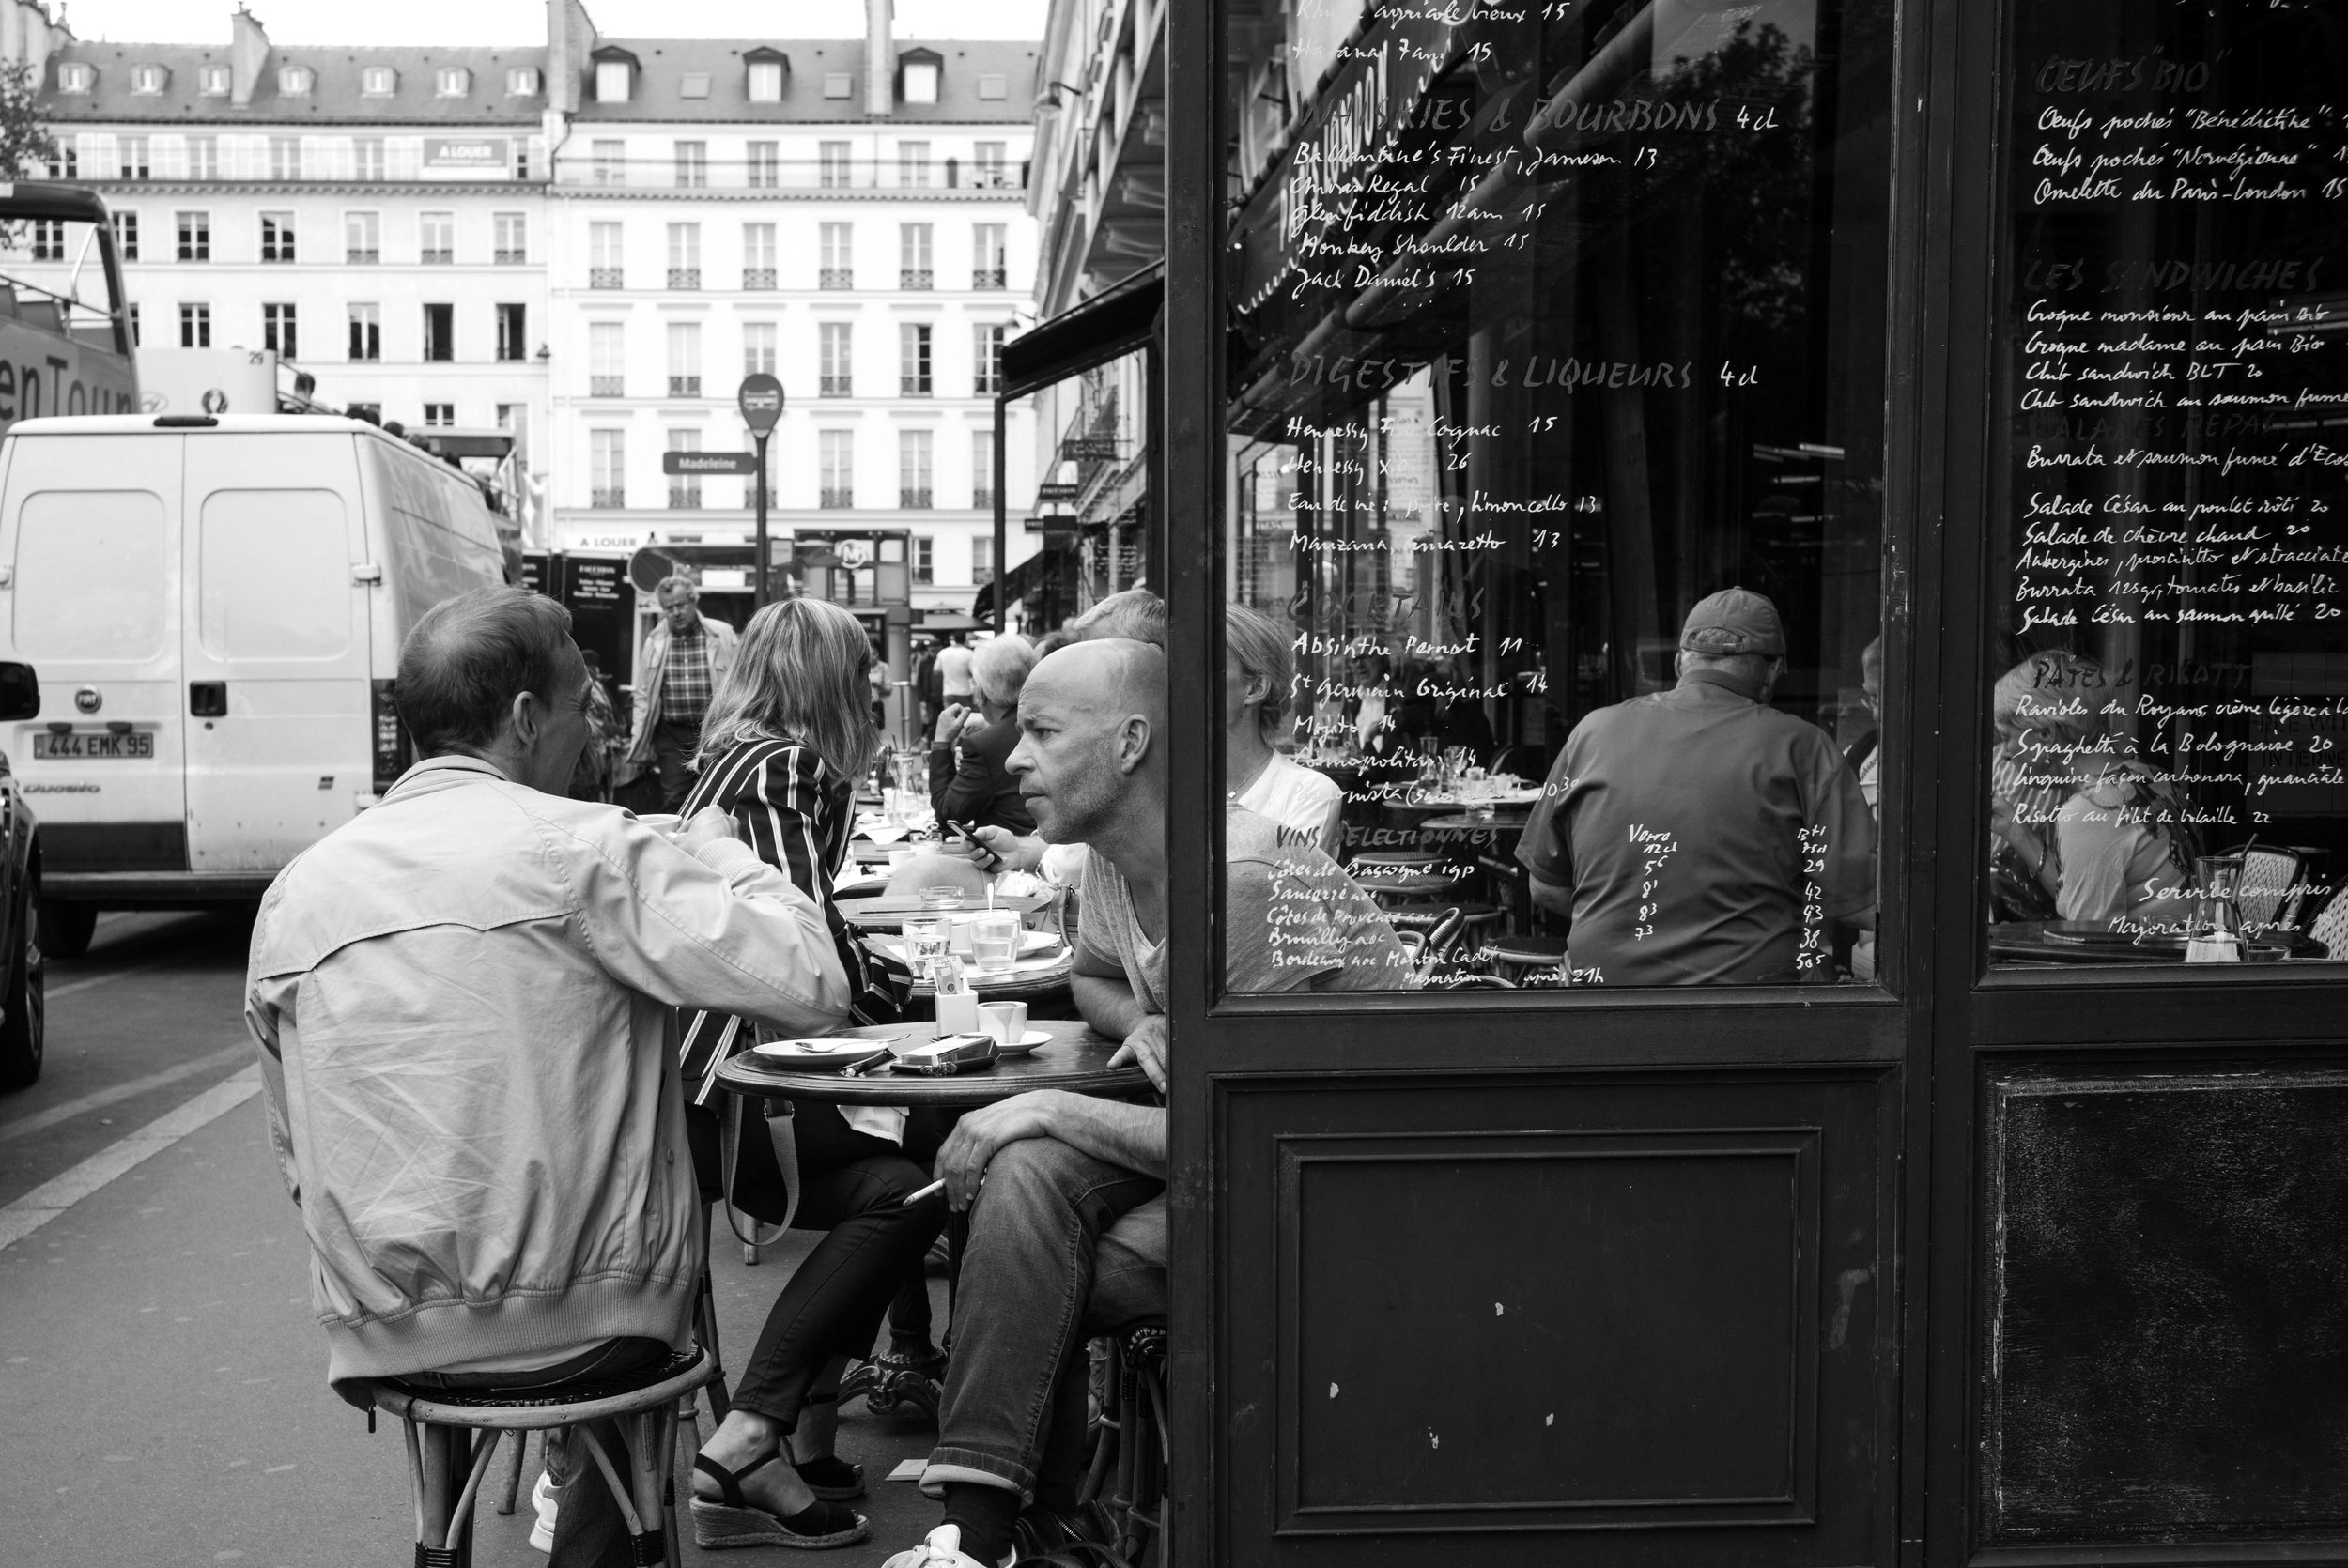 Honestly, I don't know what the significance of this image is. Other than being street documentation of a brasserie in Paris, there is nothing special about it.